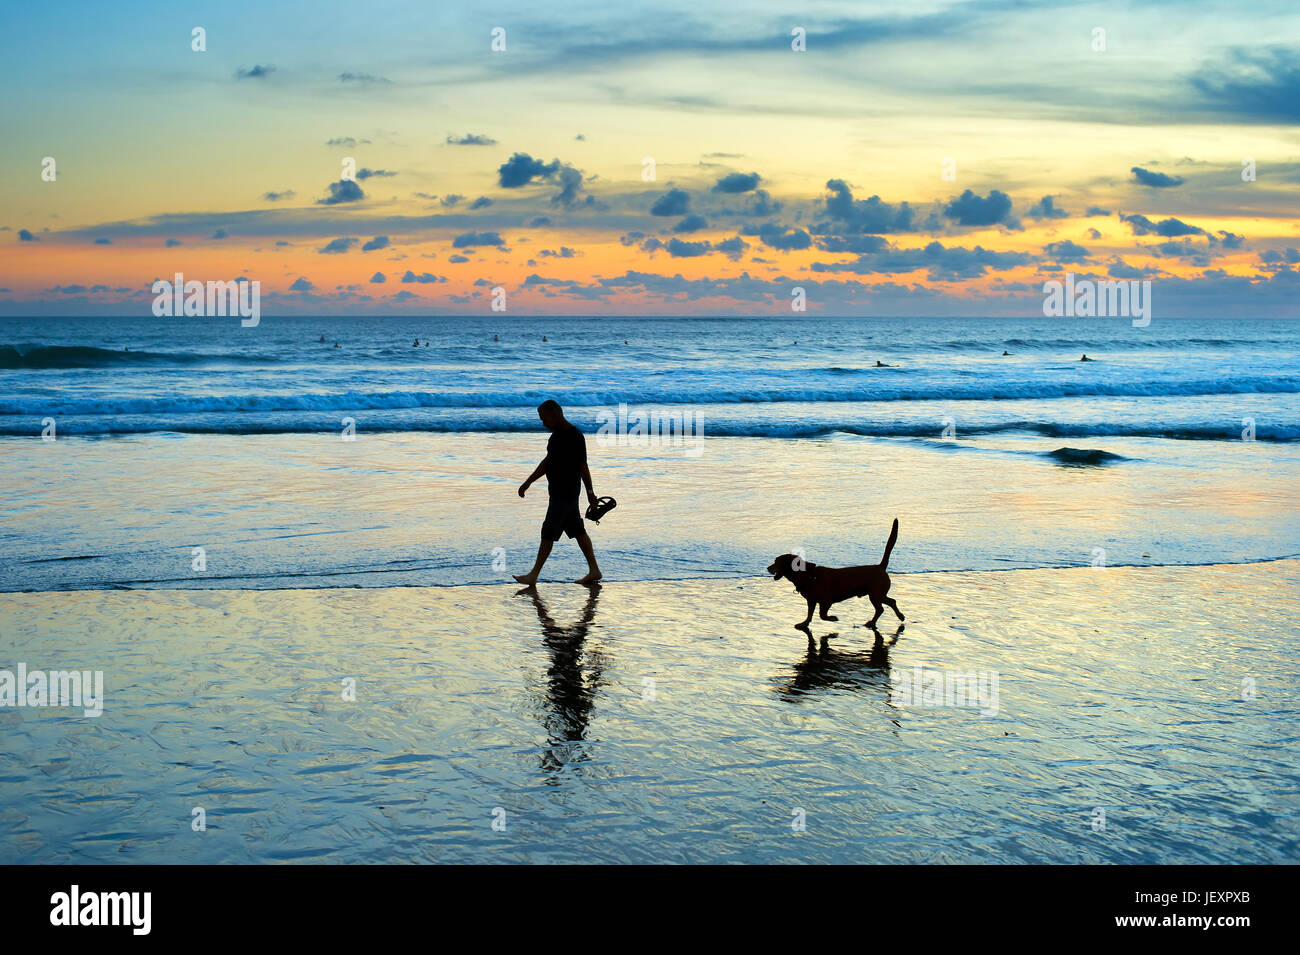 Silhouette of a man and dog walking on a beach at sunset. Bali island, Indonesia - Stock Image